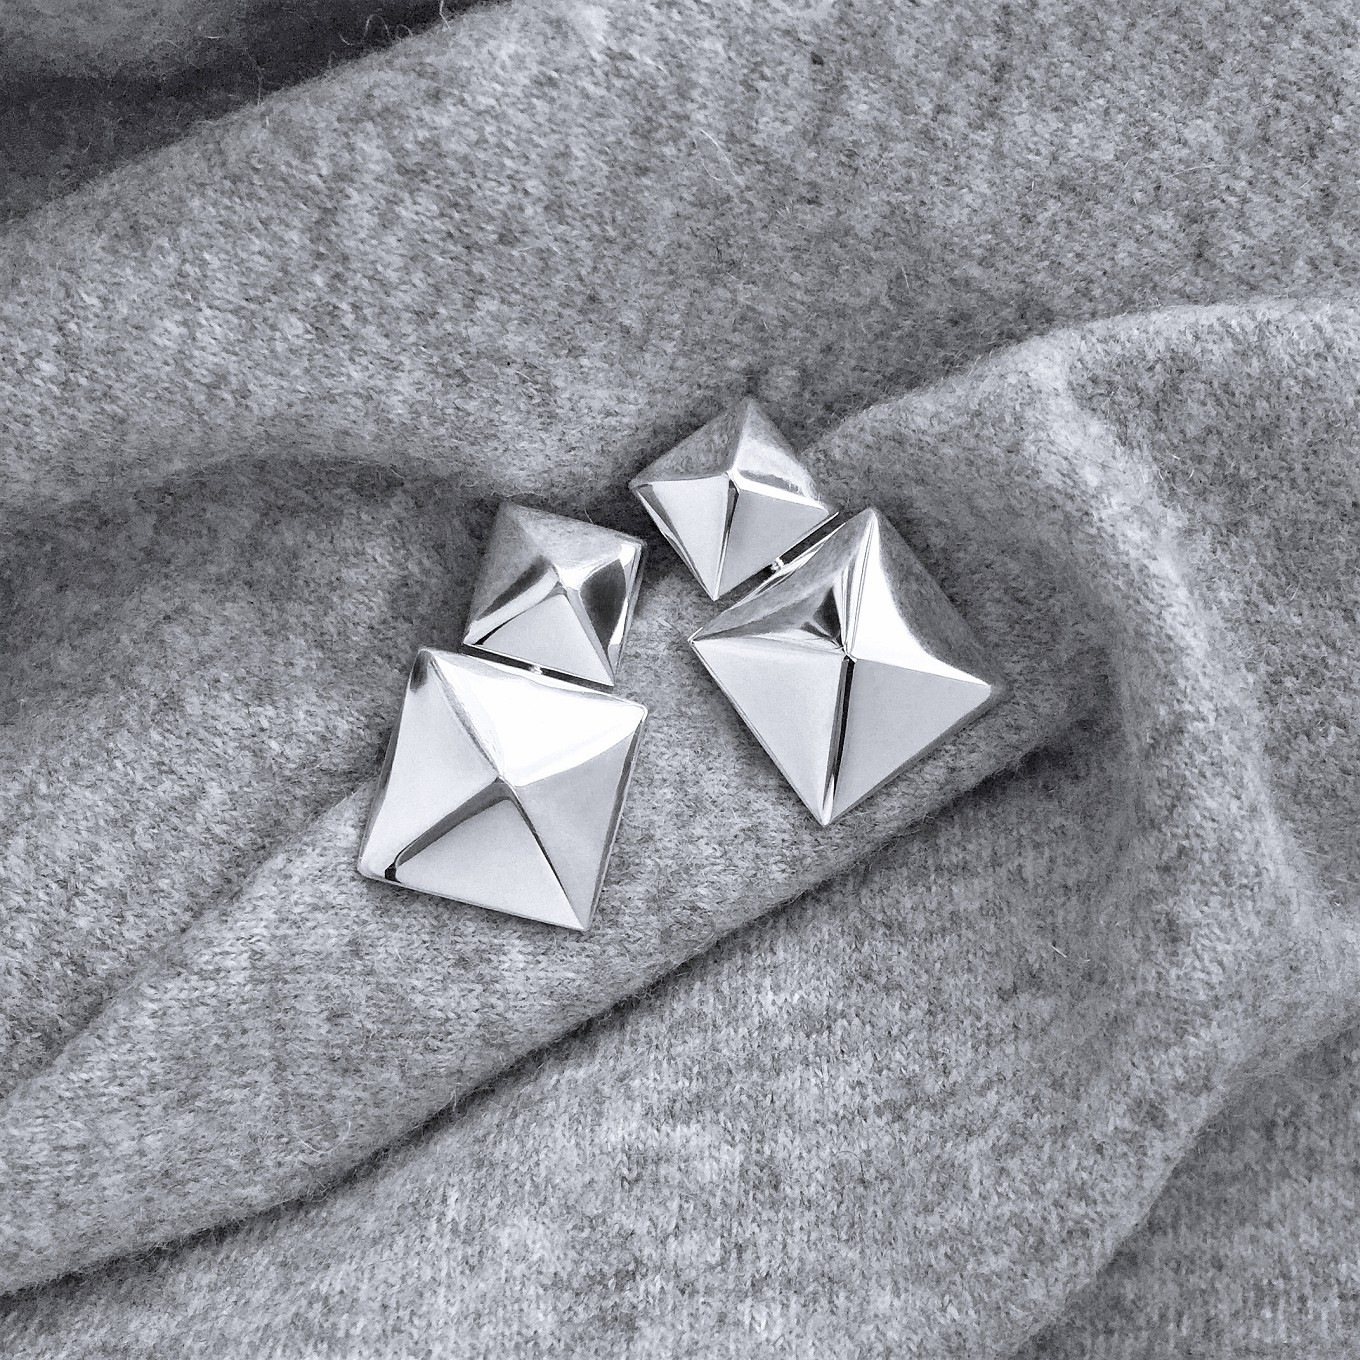 G SERIES DOUBLE DROP PYRAMID EARRINGS IN STERLING SILVER